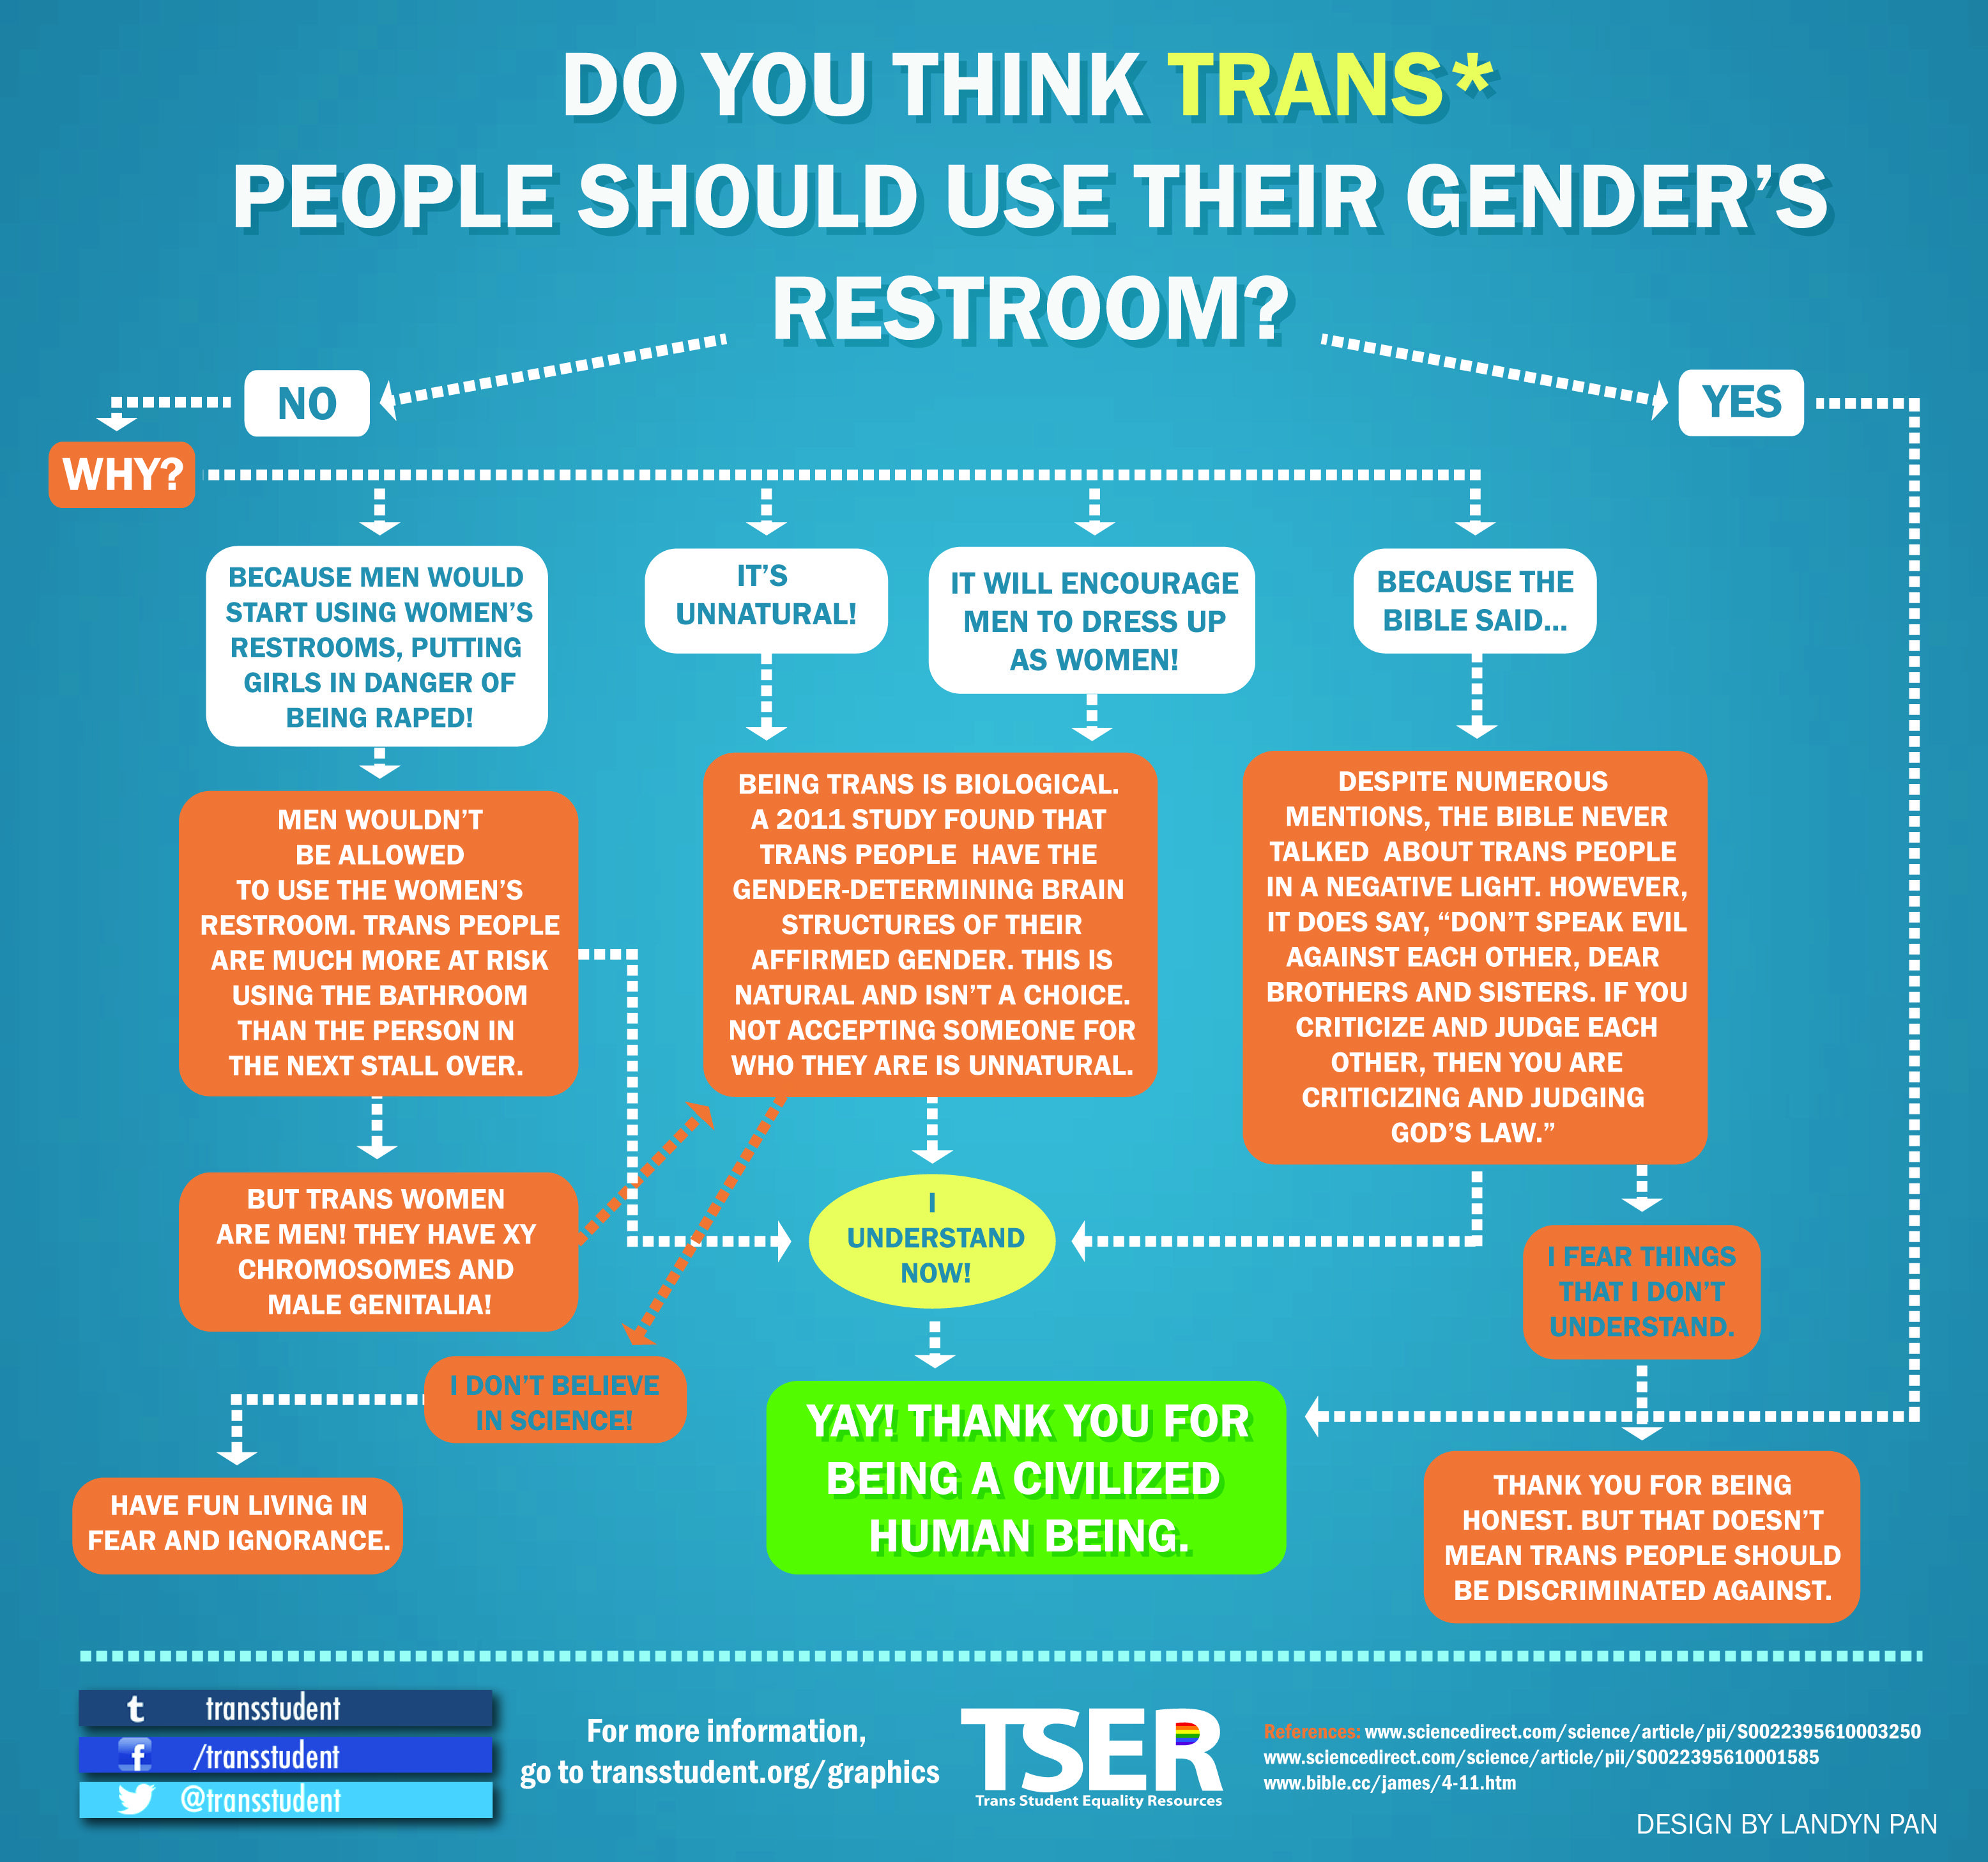 17 best images about gender/trans/queer signs on pinterest